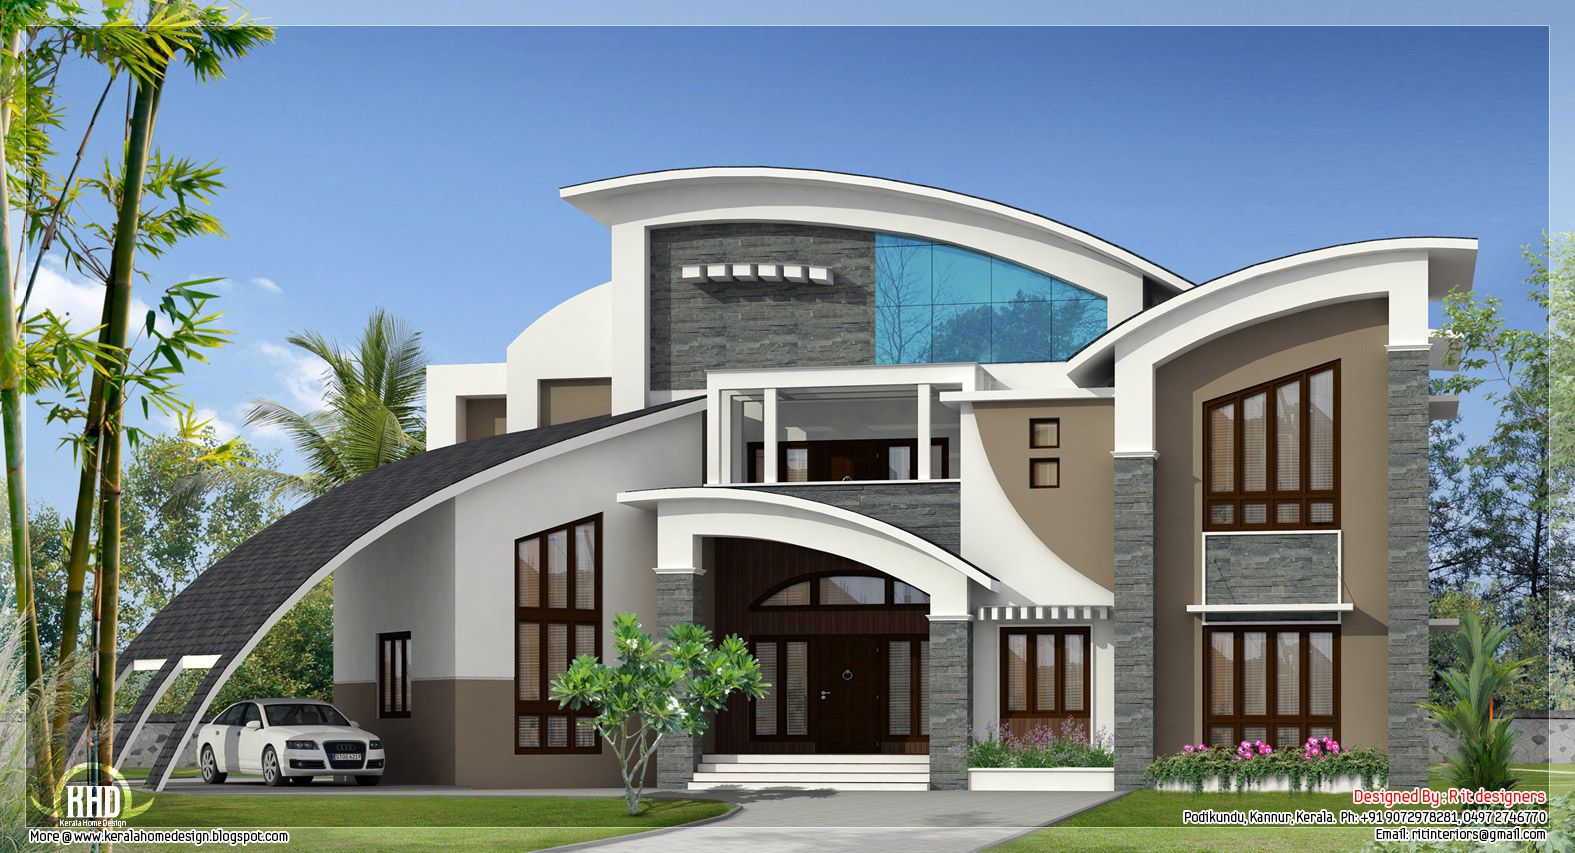 5870 square feet square meter square yards 5 bedroom super luxury kerala villa design by r it designers kannur kerala house i